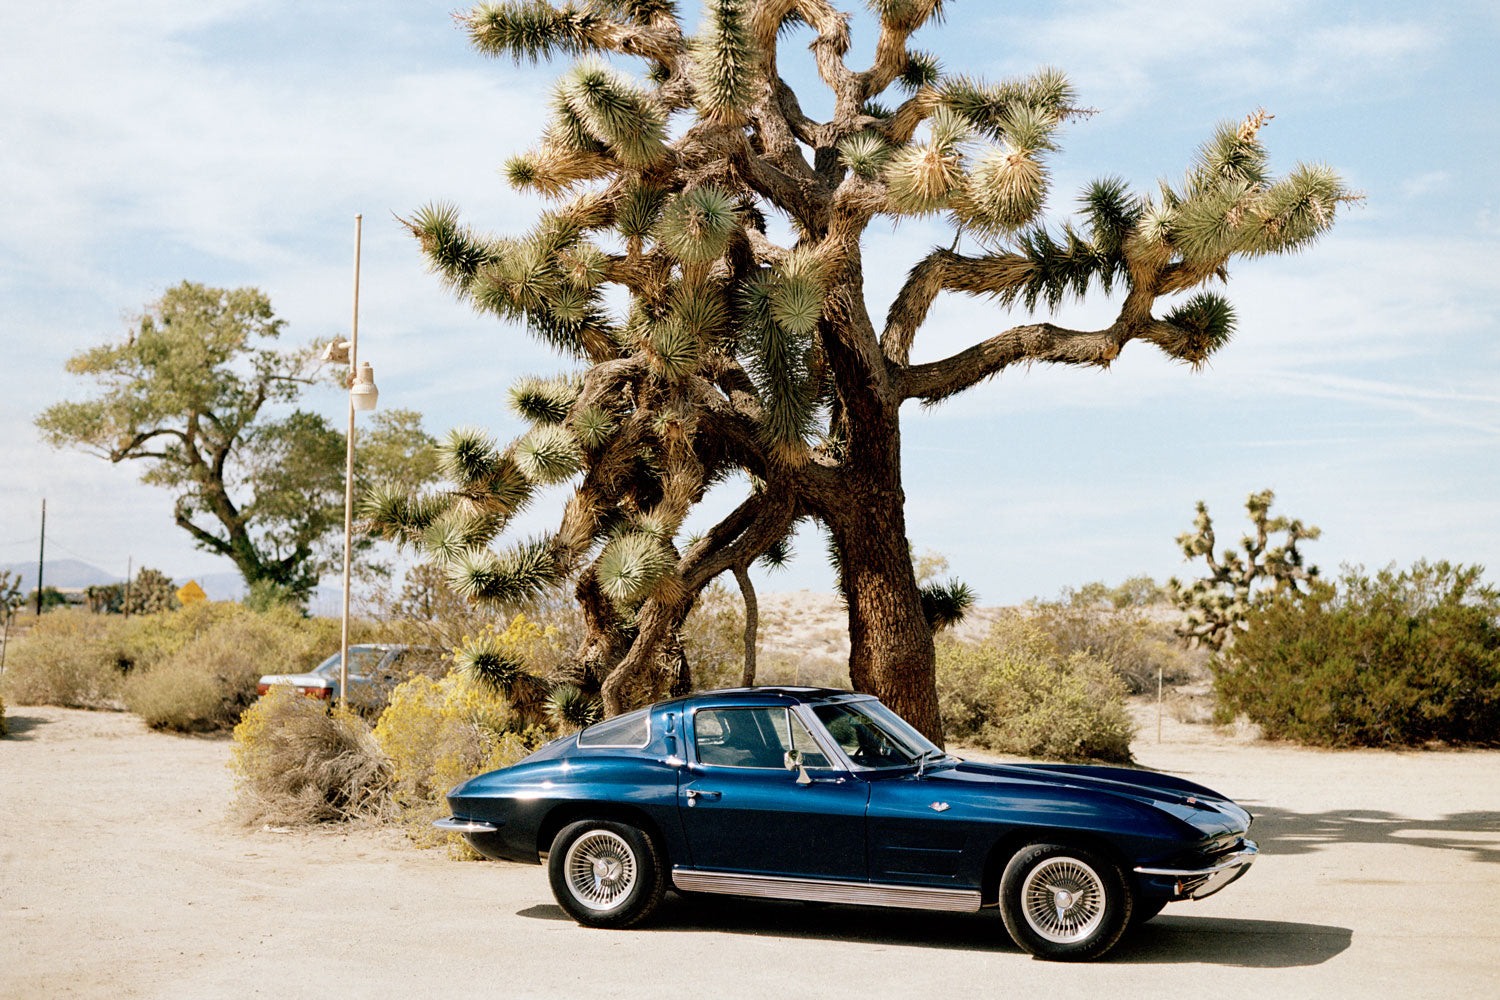 Blue Corvette, Palmdale, California